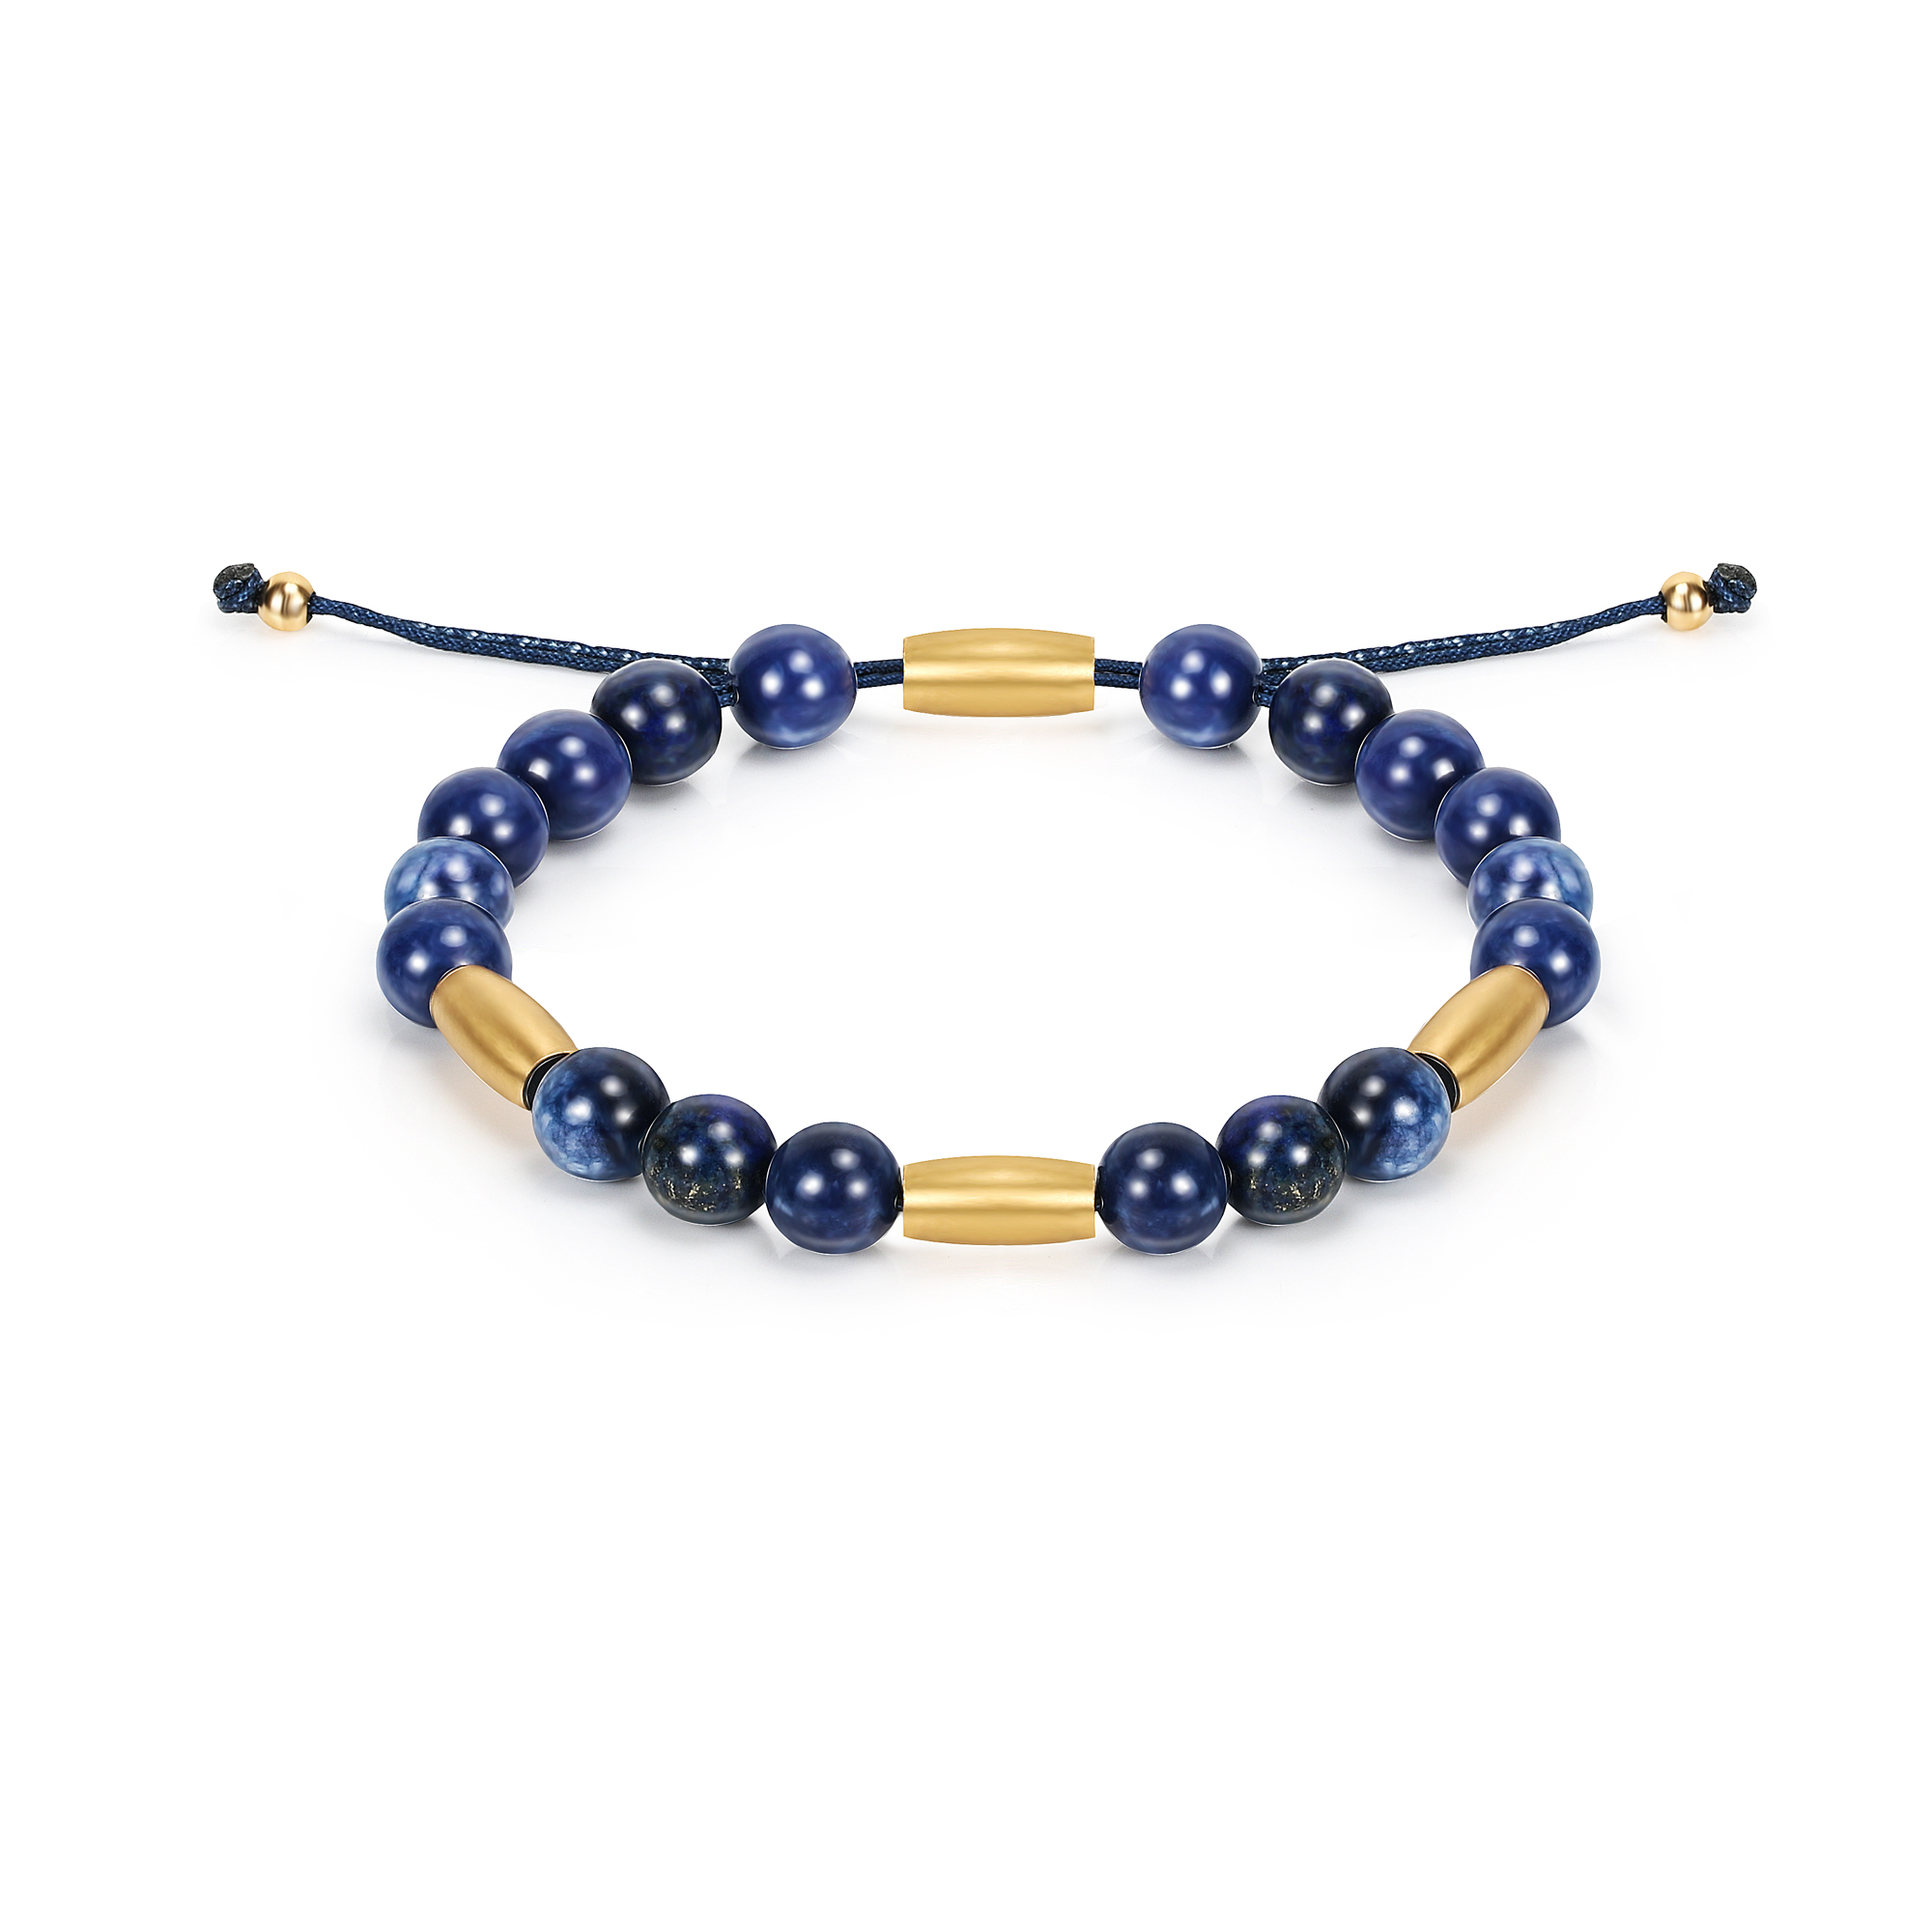 Natural Stone Lapis Lazuli Beaded Bracelets for Women Men High Quality Fashion Round Stretch